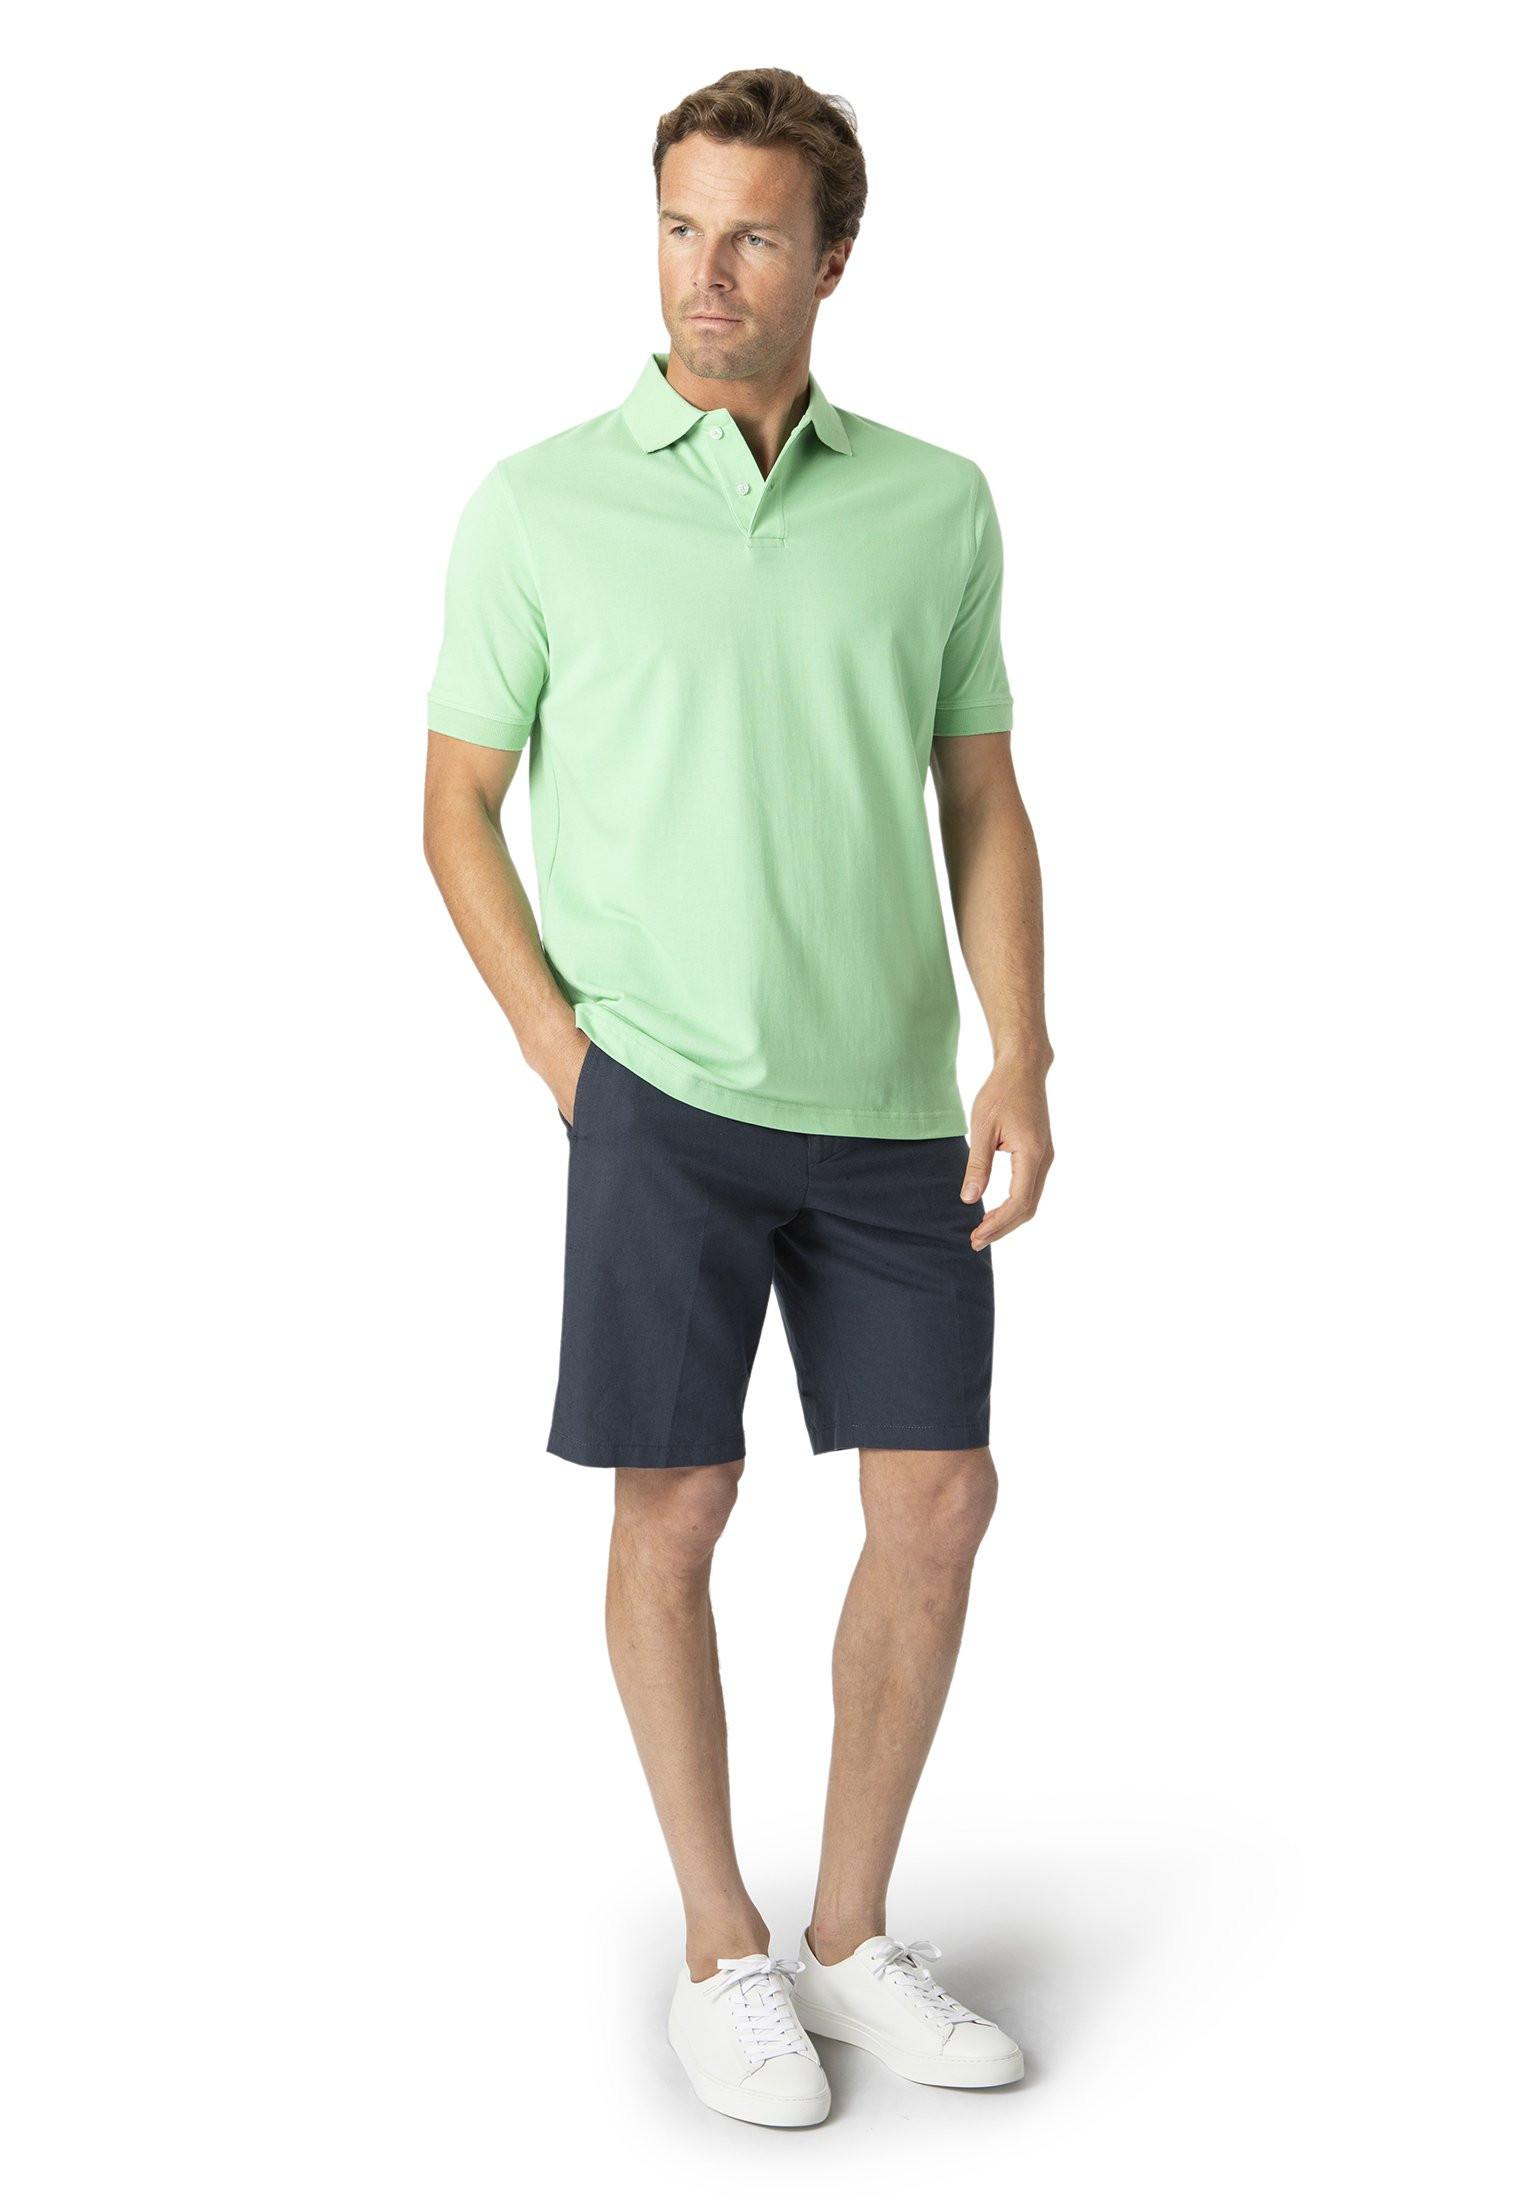 Milford Apple 100% Pique Cotton Polo Shirt